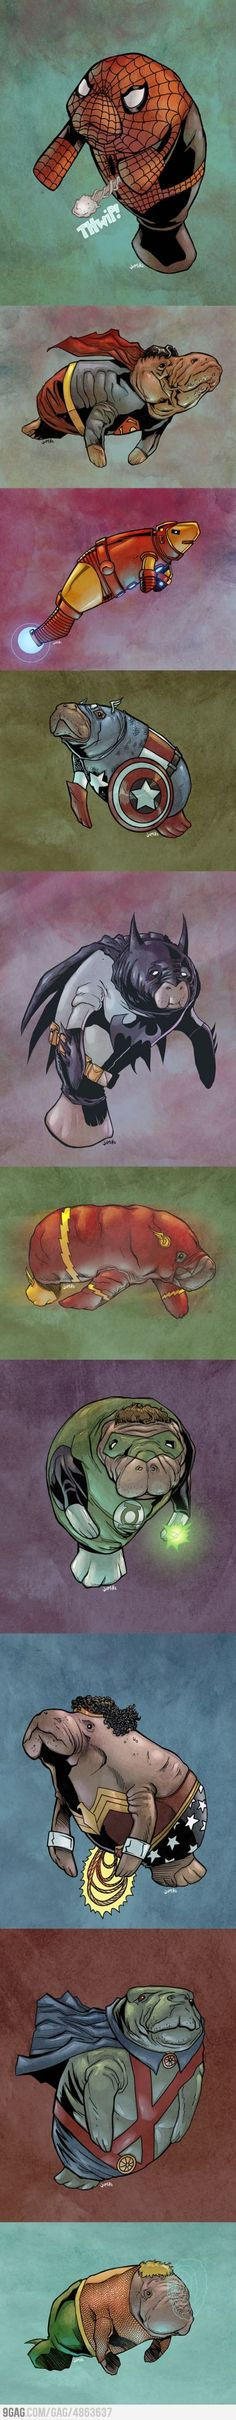 Superheroes as Manatees #superheros #manatees